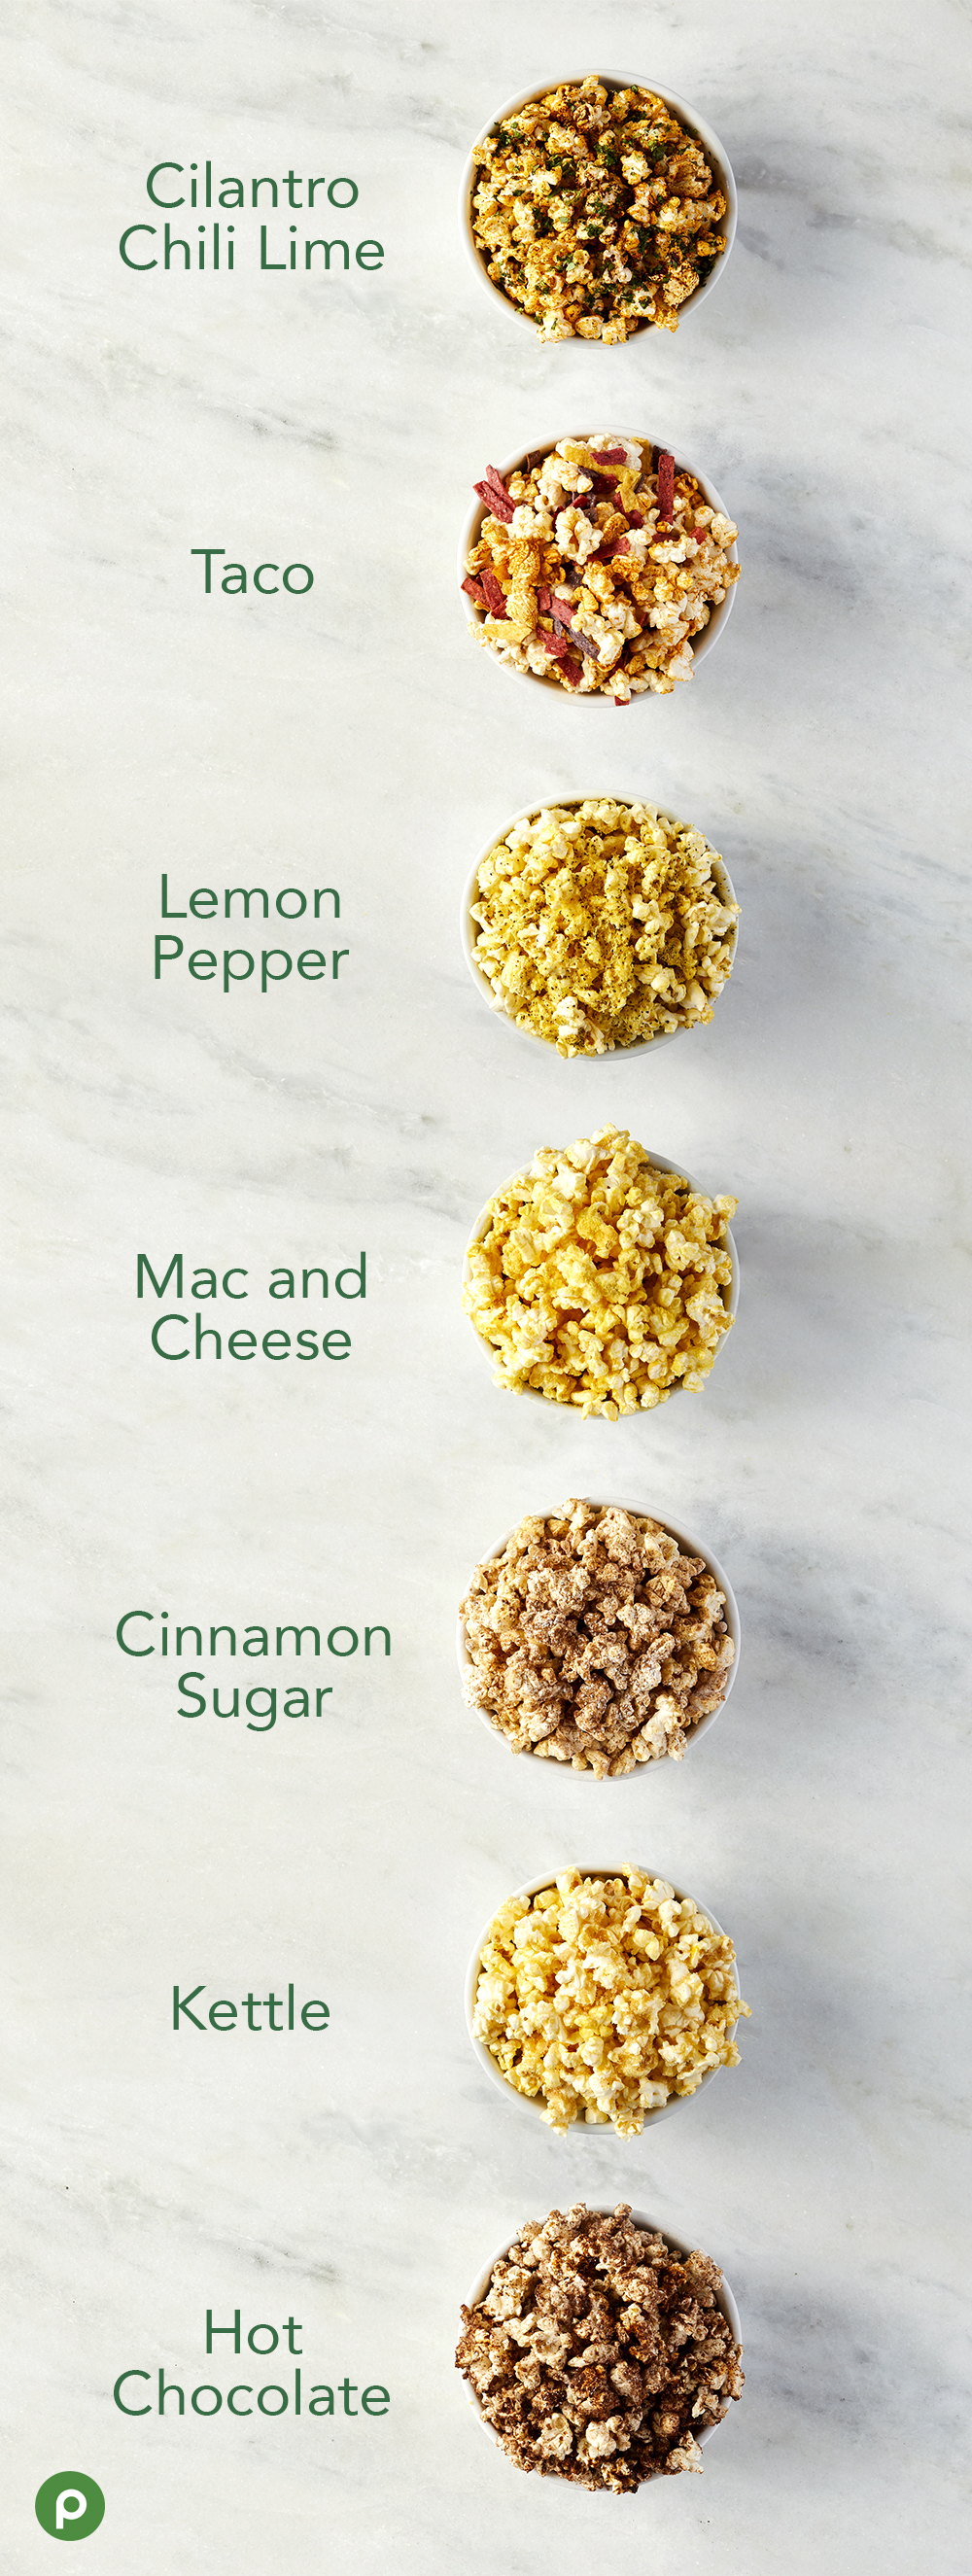 7 popcorn flavors in bowls on marble surface